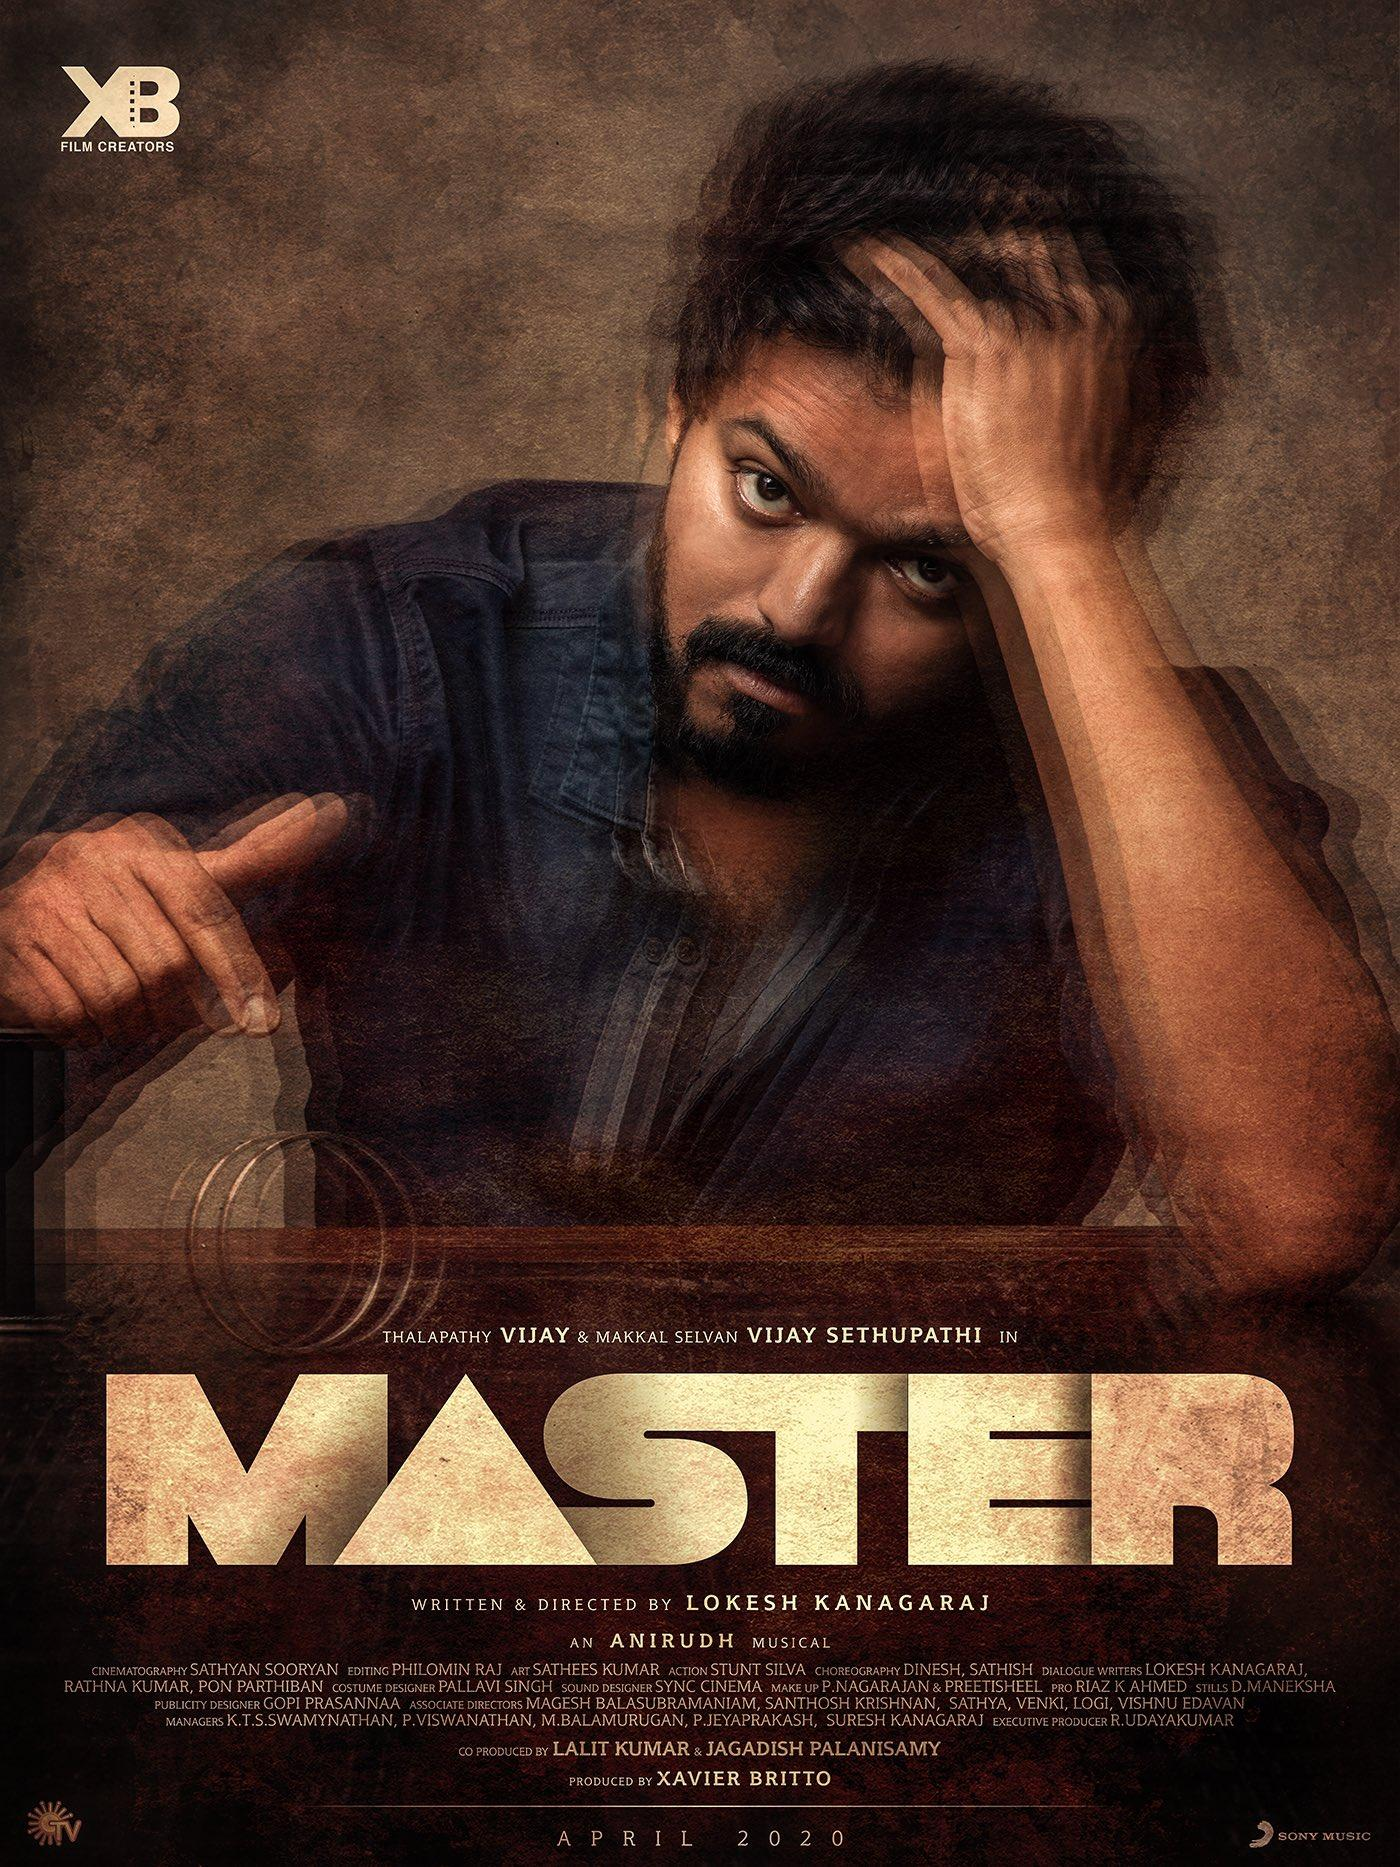 'Master' will release only in theatres' – Production house clears air on rumours